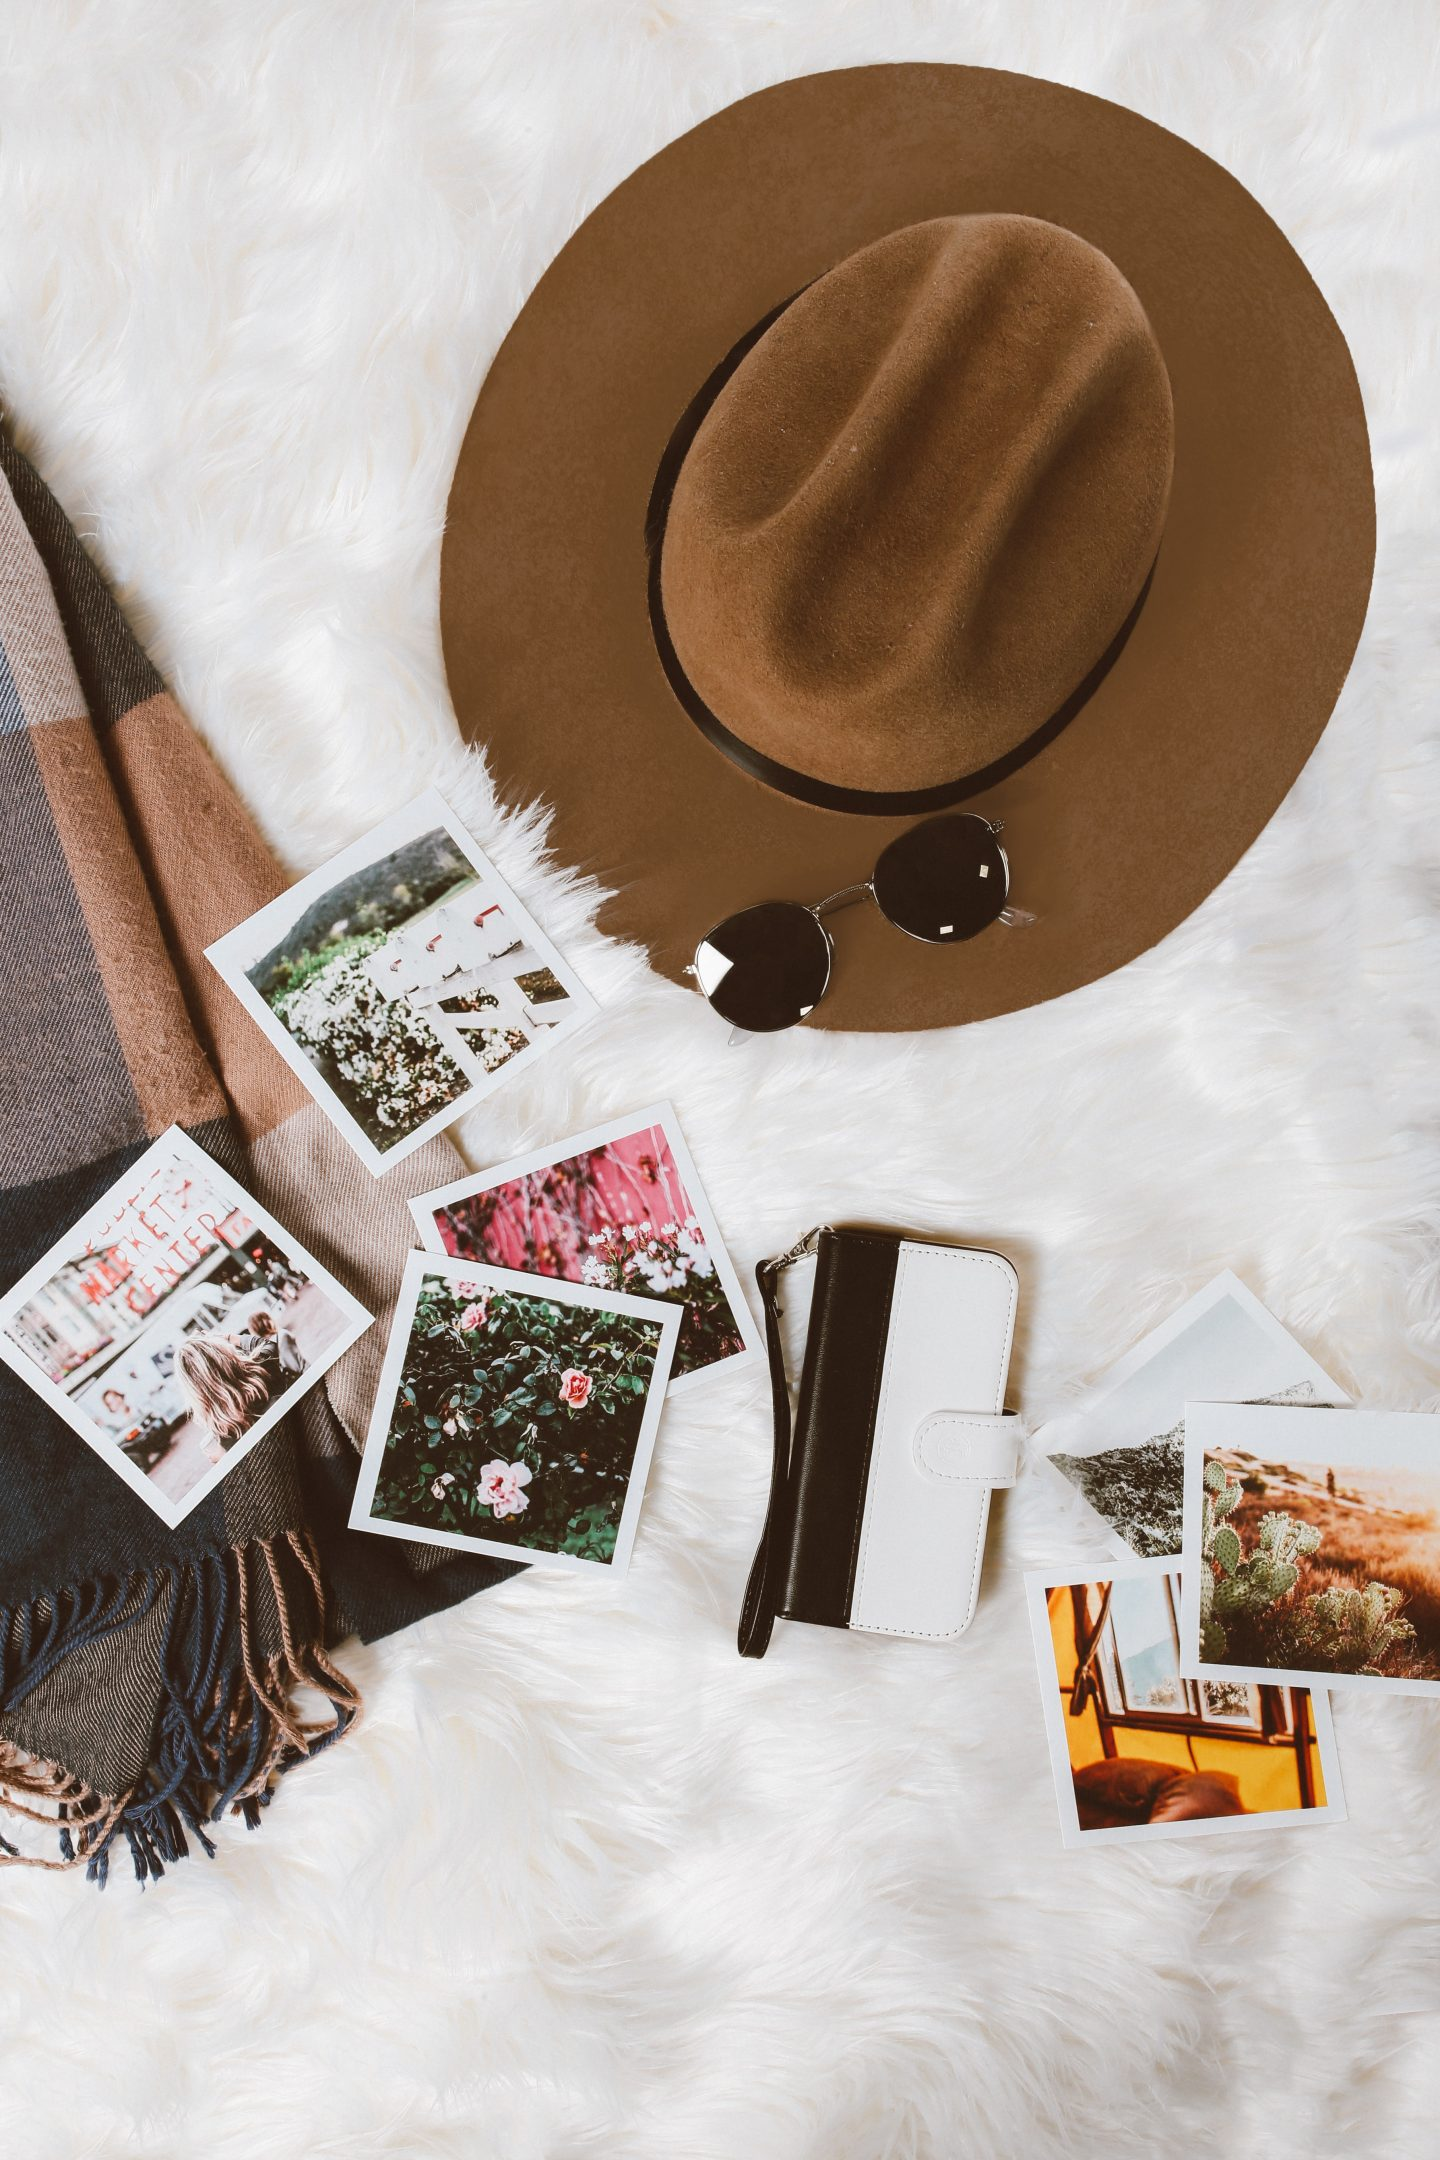 polaroid camera with polaroid pictures, a hat and a bag, travel secrets